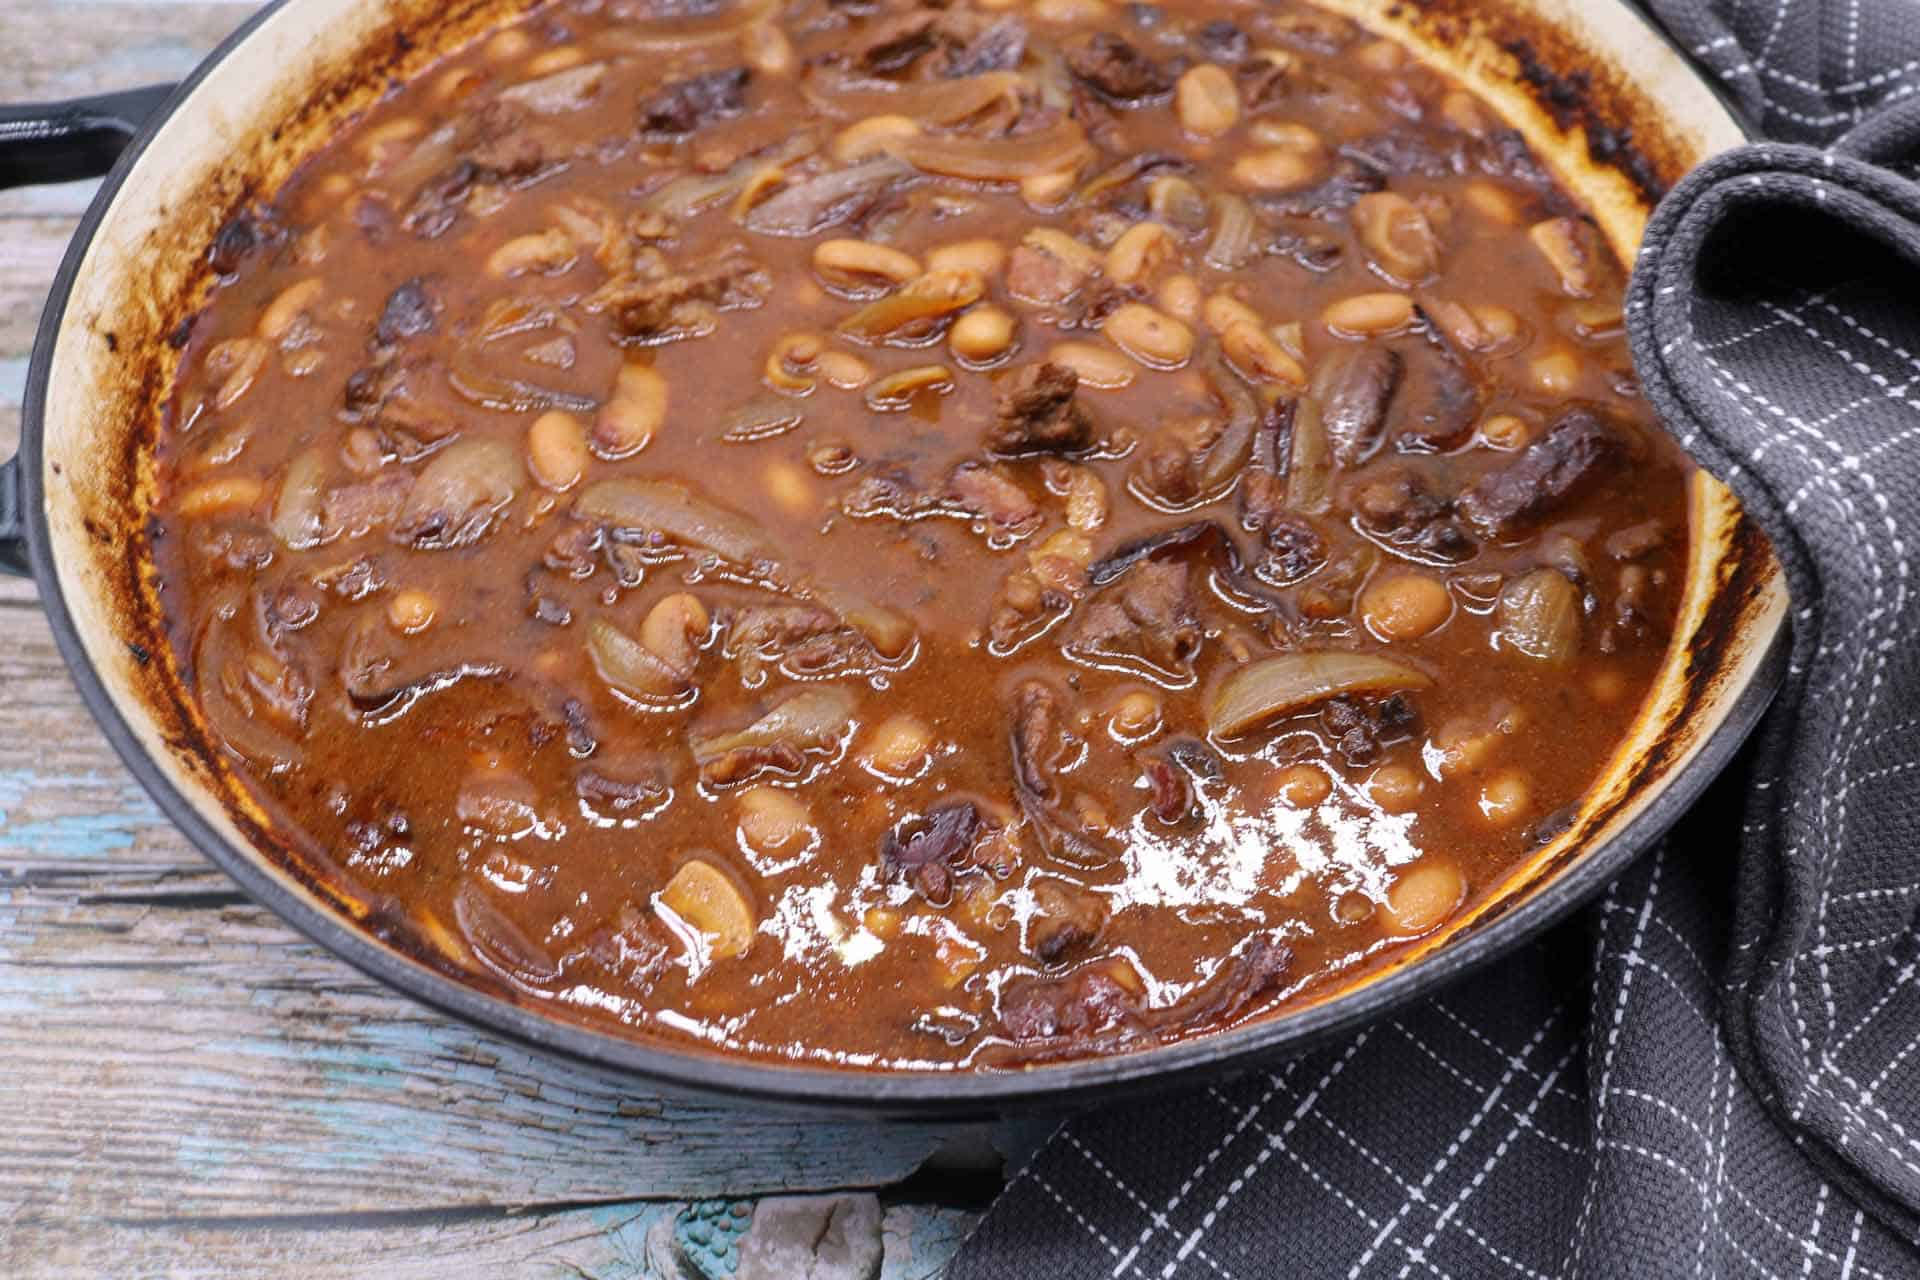 Beef and Boston Baked Beans, Beef and Boston Baked Beans